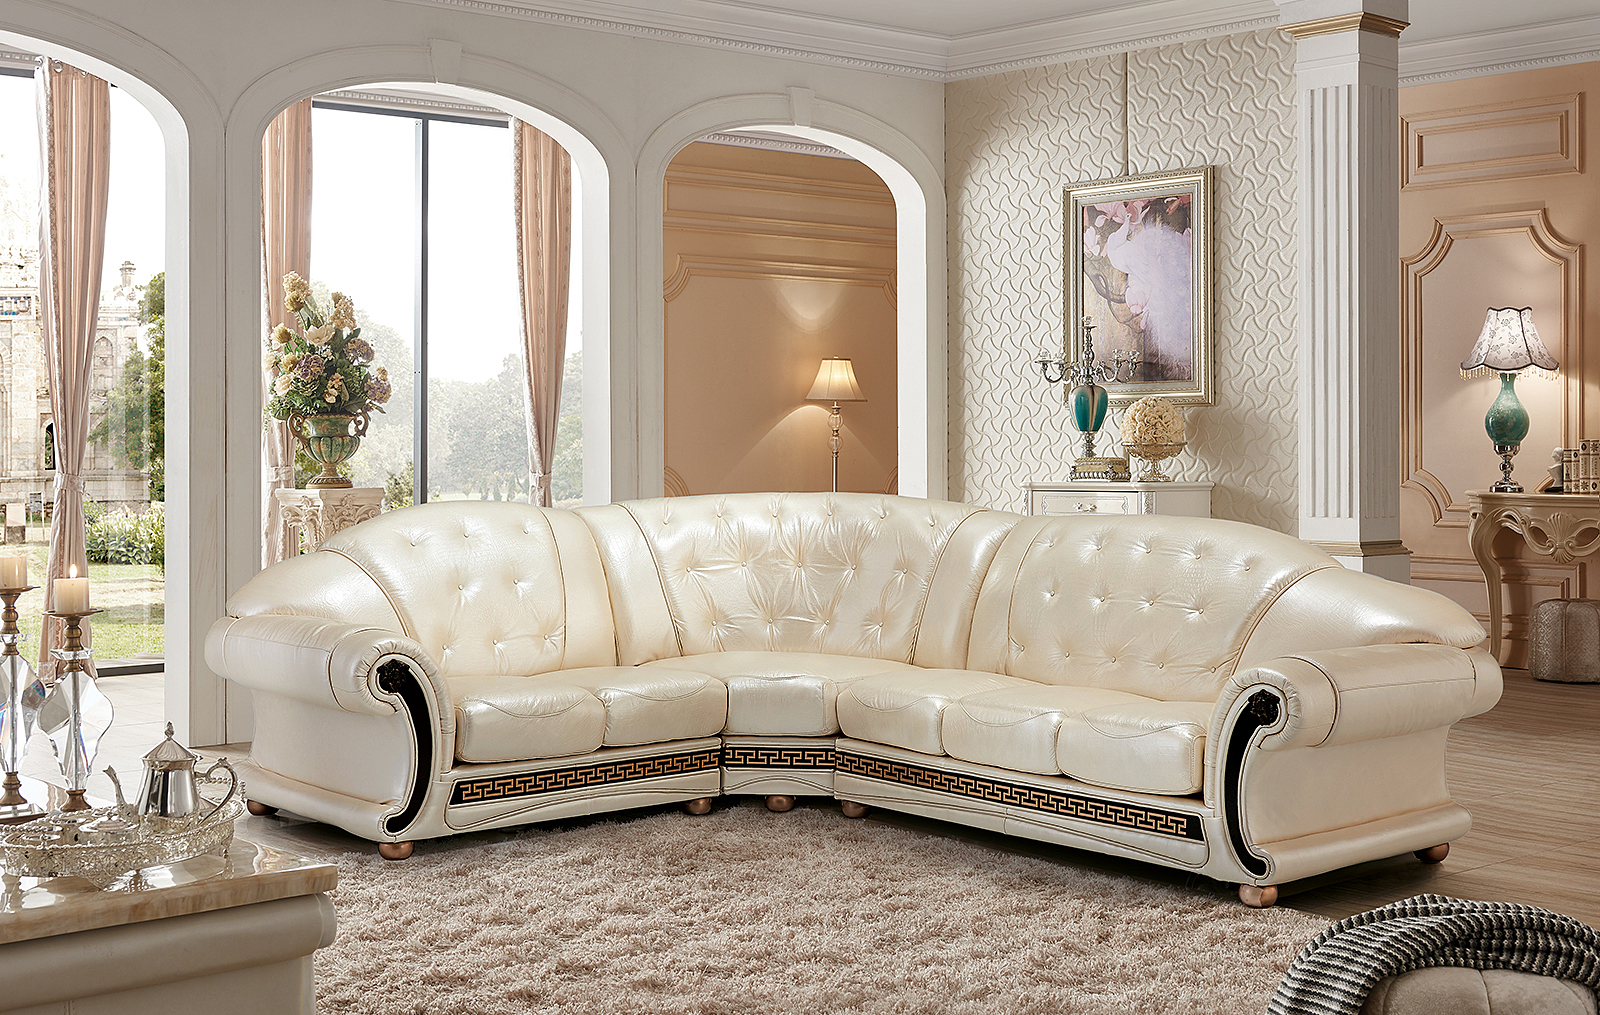 Apolo Sectional Pearl, Sectionals, Living Room Furniture